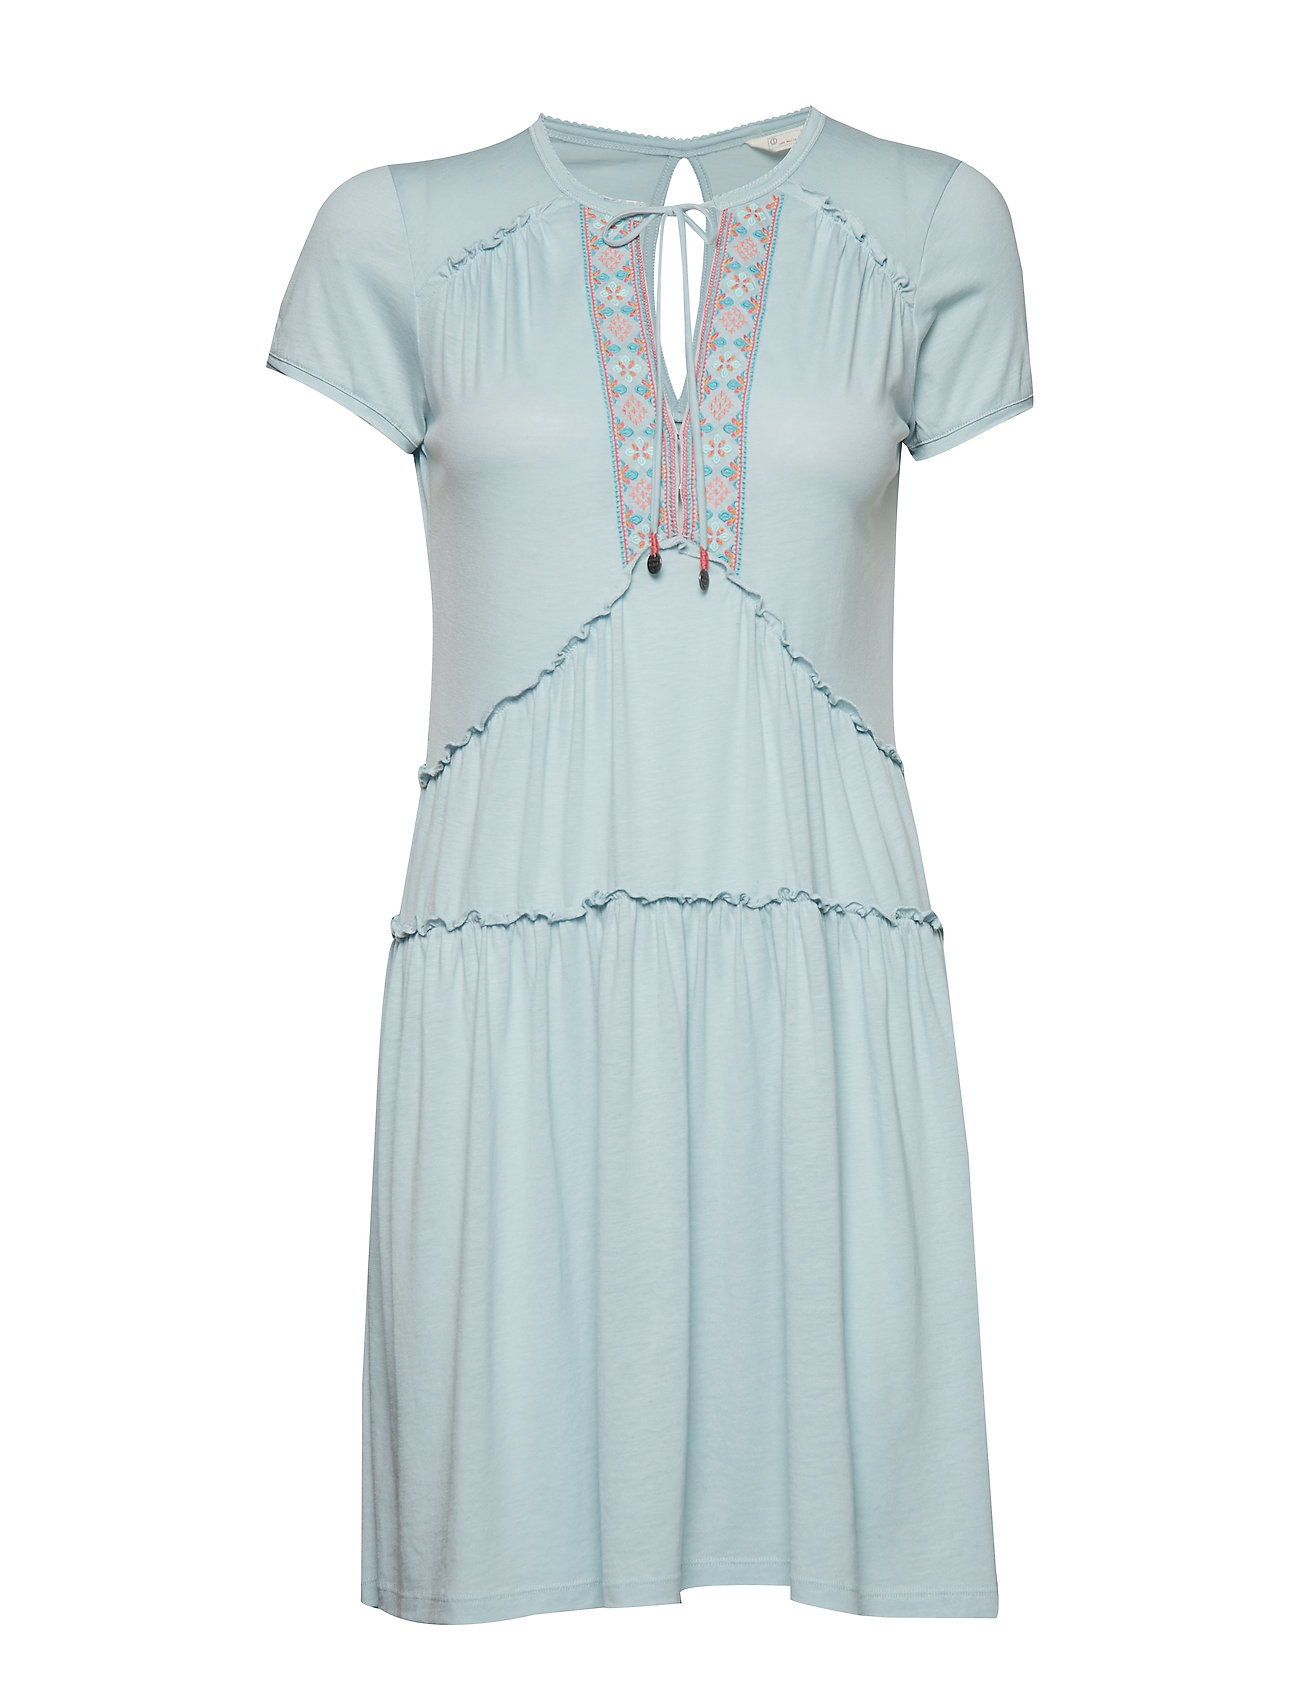 ODD MOLLY love chimes dress